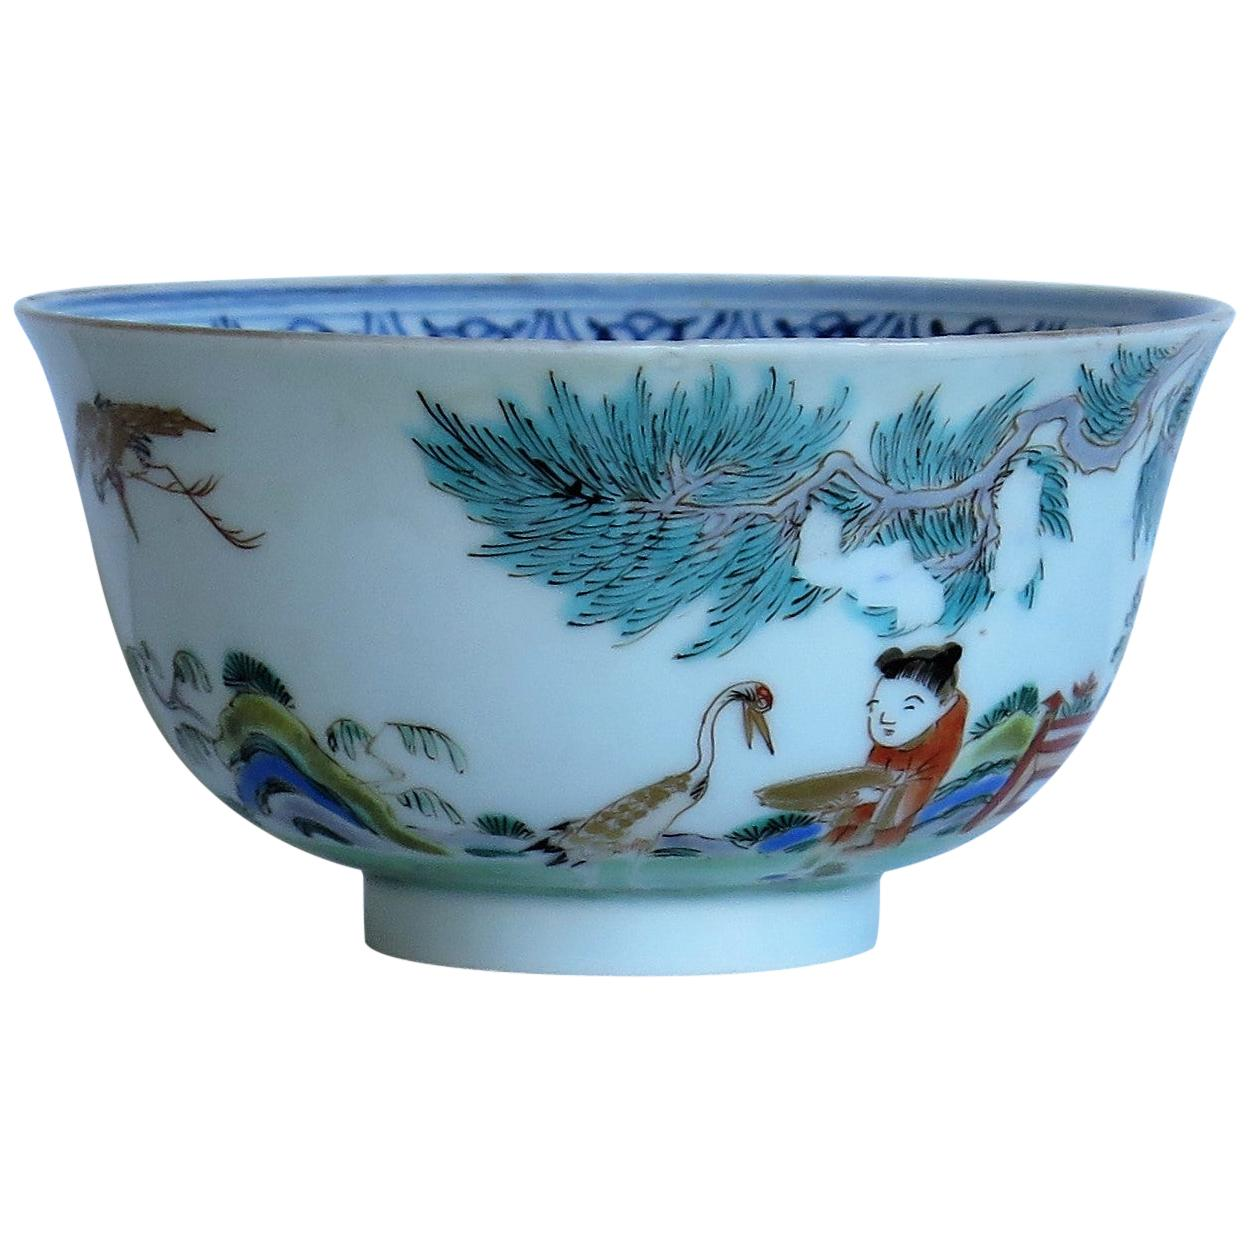 Early 19th Century Japanese Porcelain Bowl Finely Hand Painted Edo Period